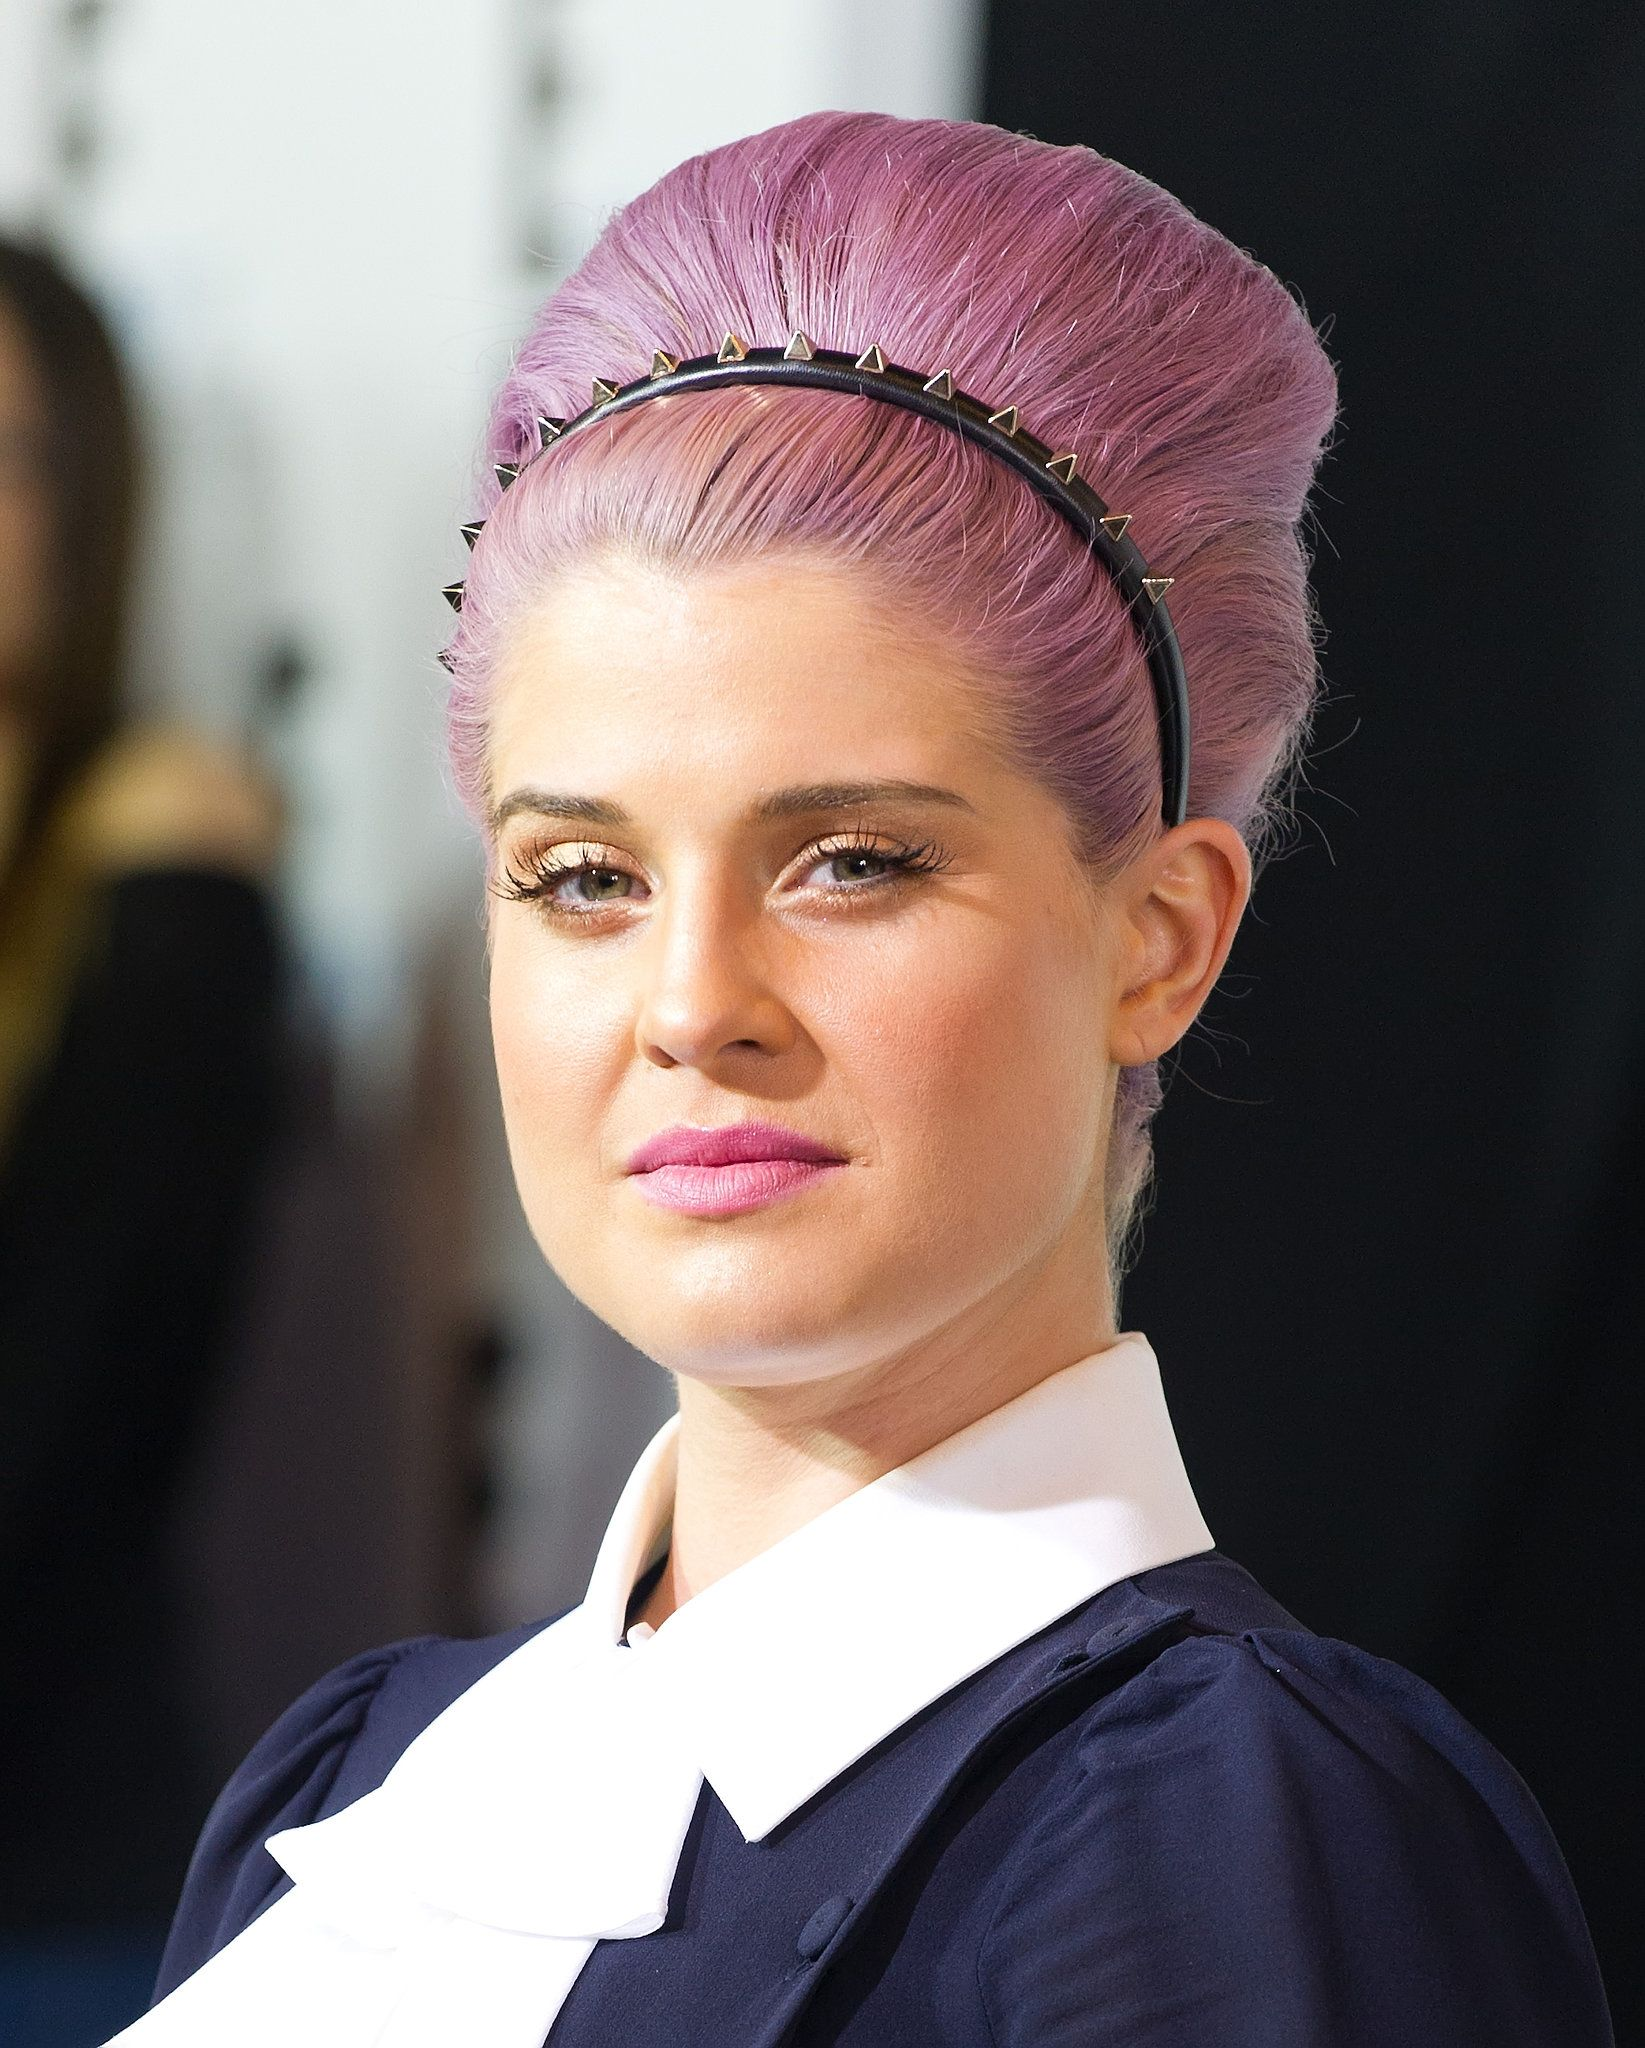 I just reacted to Kelly Osbourne. Check it out!